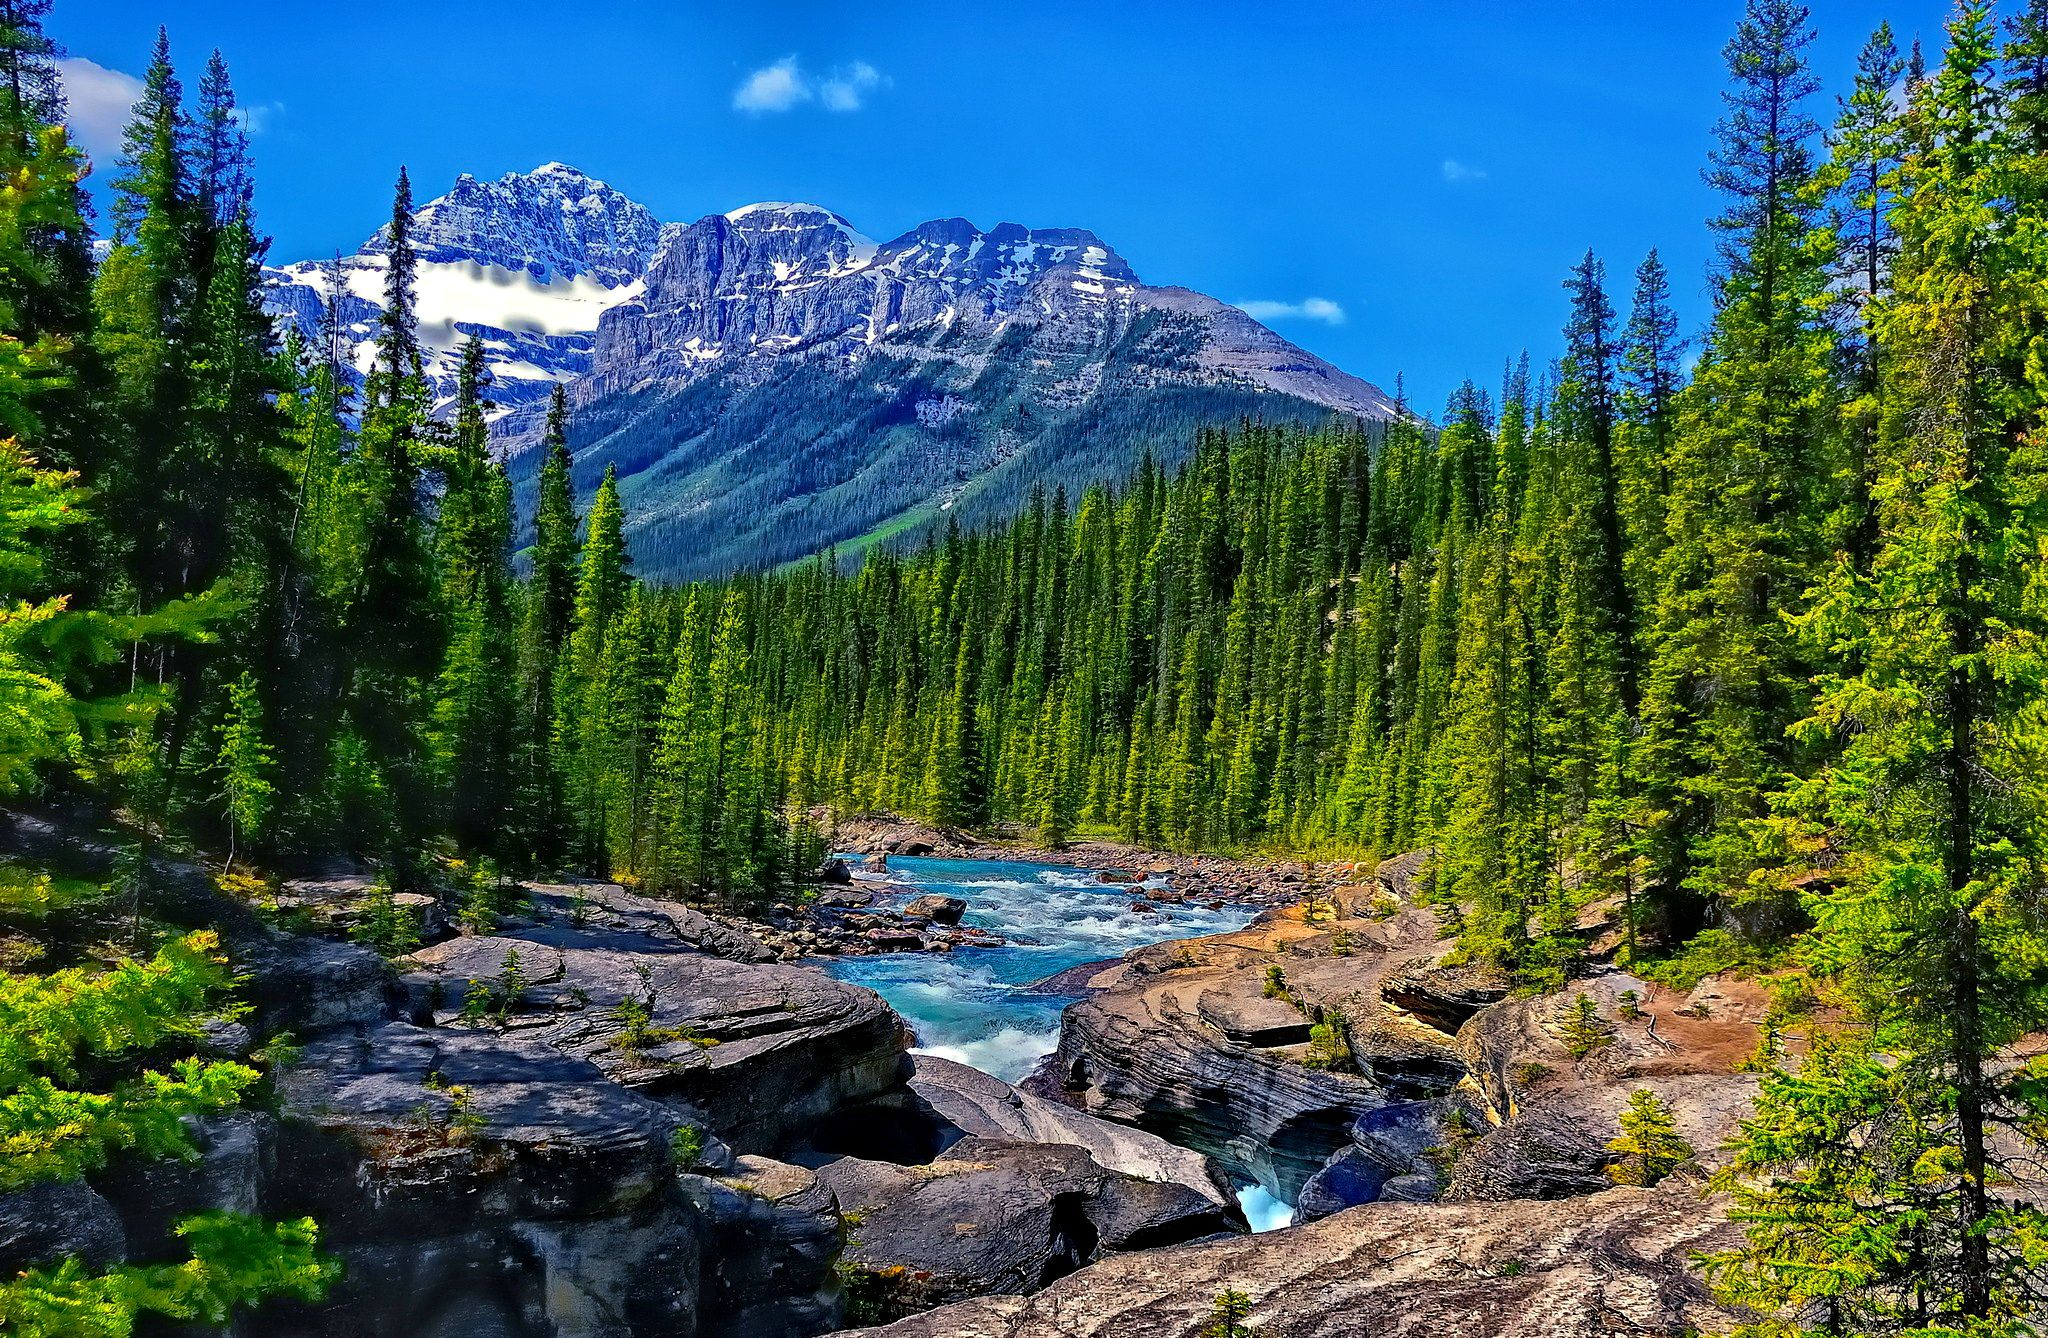 Mountain Stream Wallpapers Boreal Forest Mountain River Hd